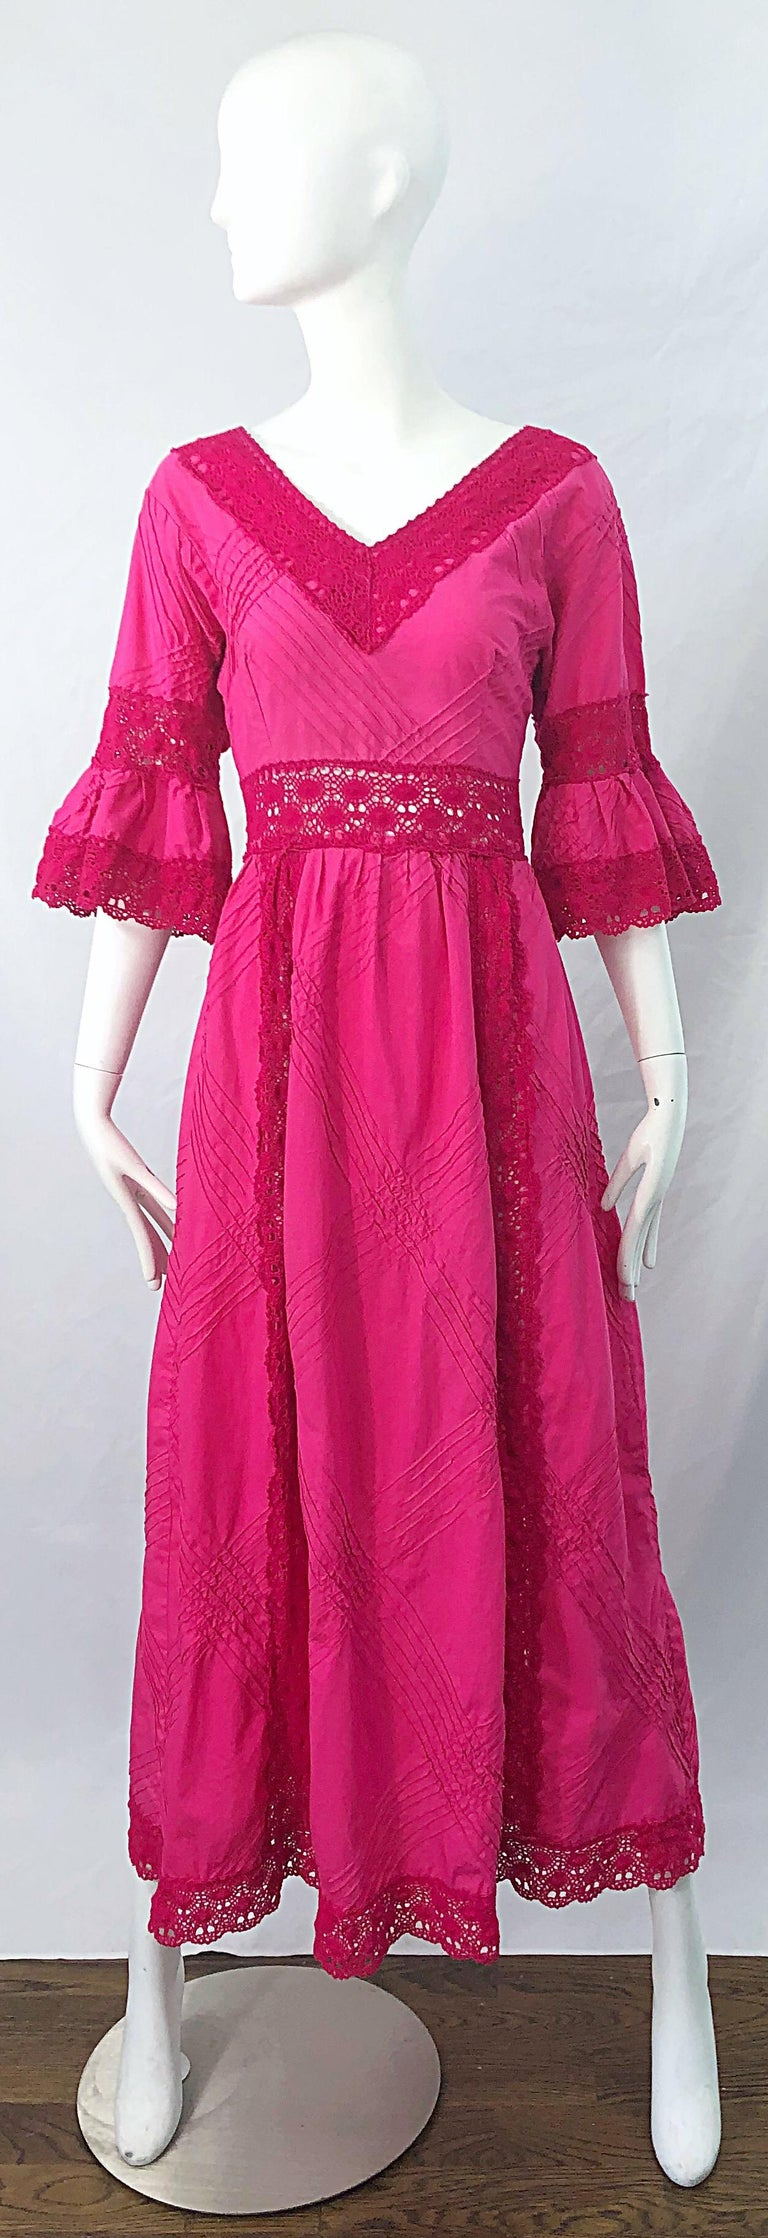 Chic 1970s TACHI CASTILLO hot pink 3/4 bell sleeve cotton crochet boho maxi dress ! Castillo was a Mexican designer who was famed for her textile works, and her ability to transform cotton for day jackets / dresses to evening dresses. This hot pink